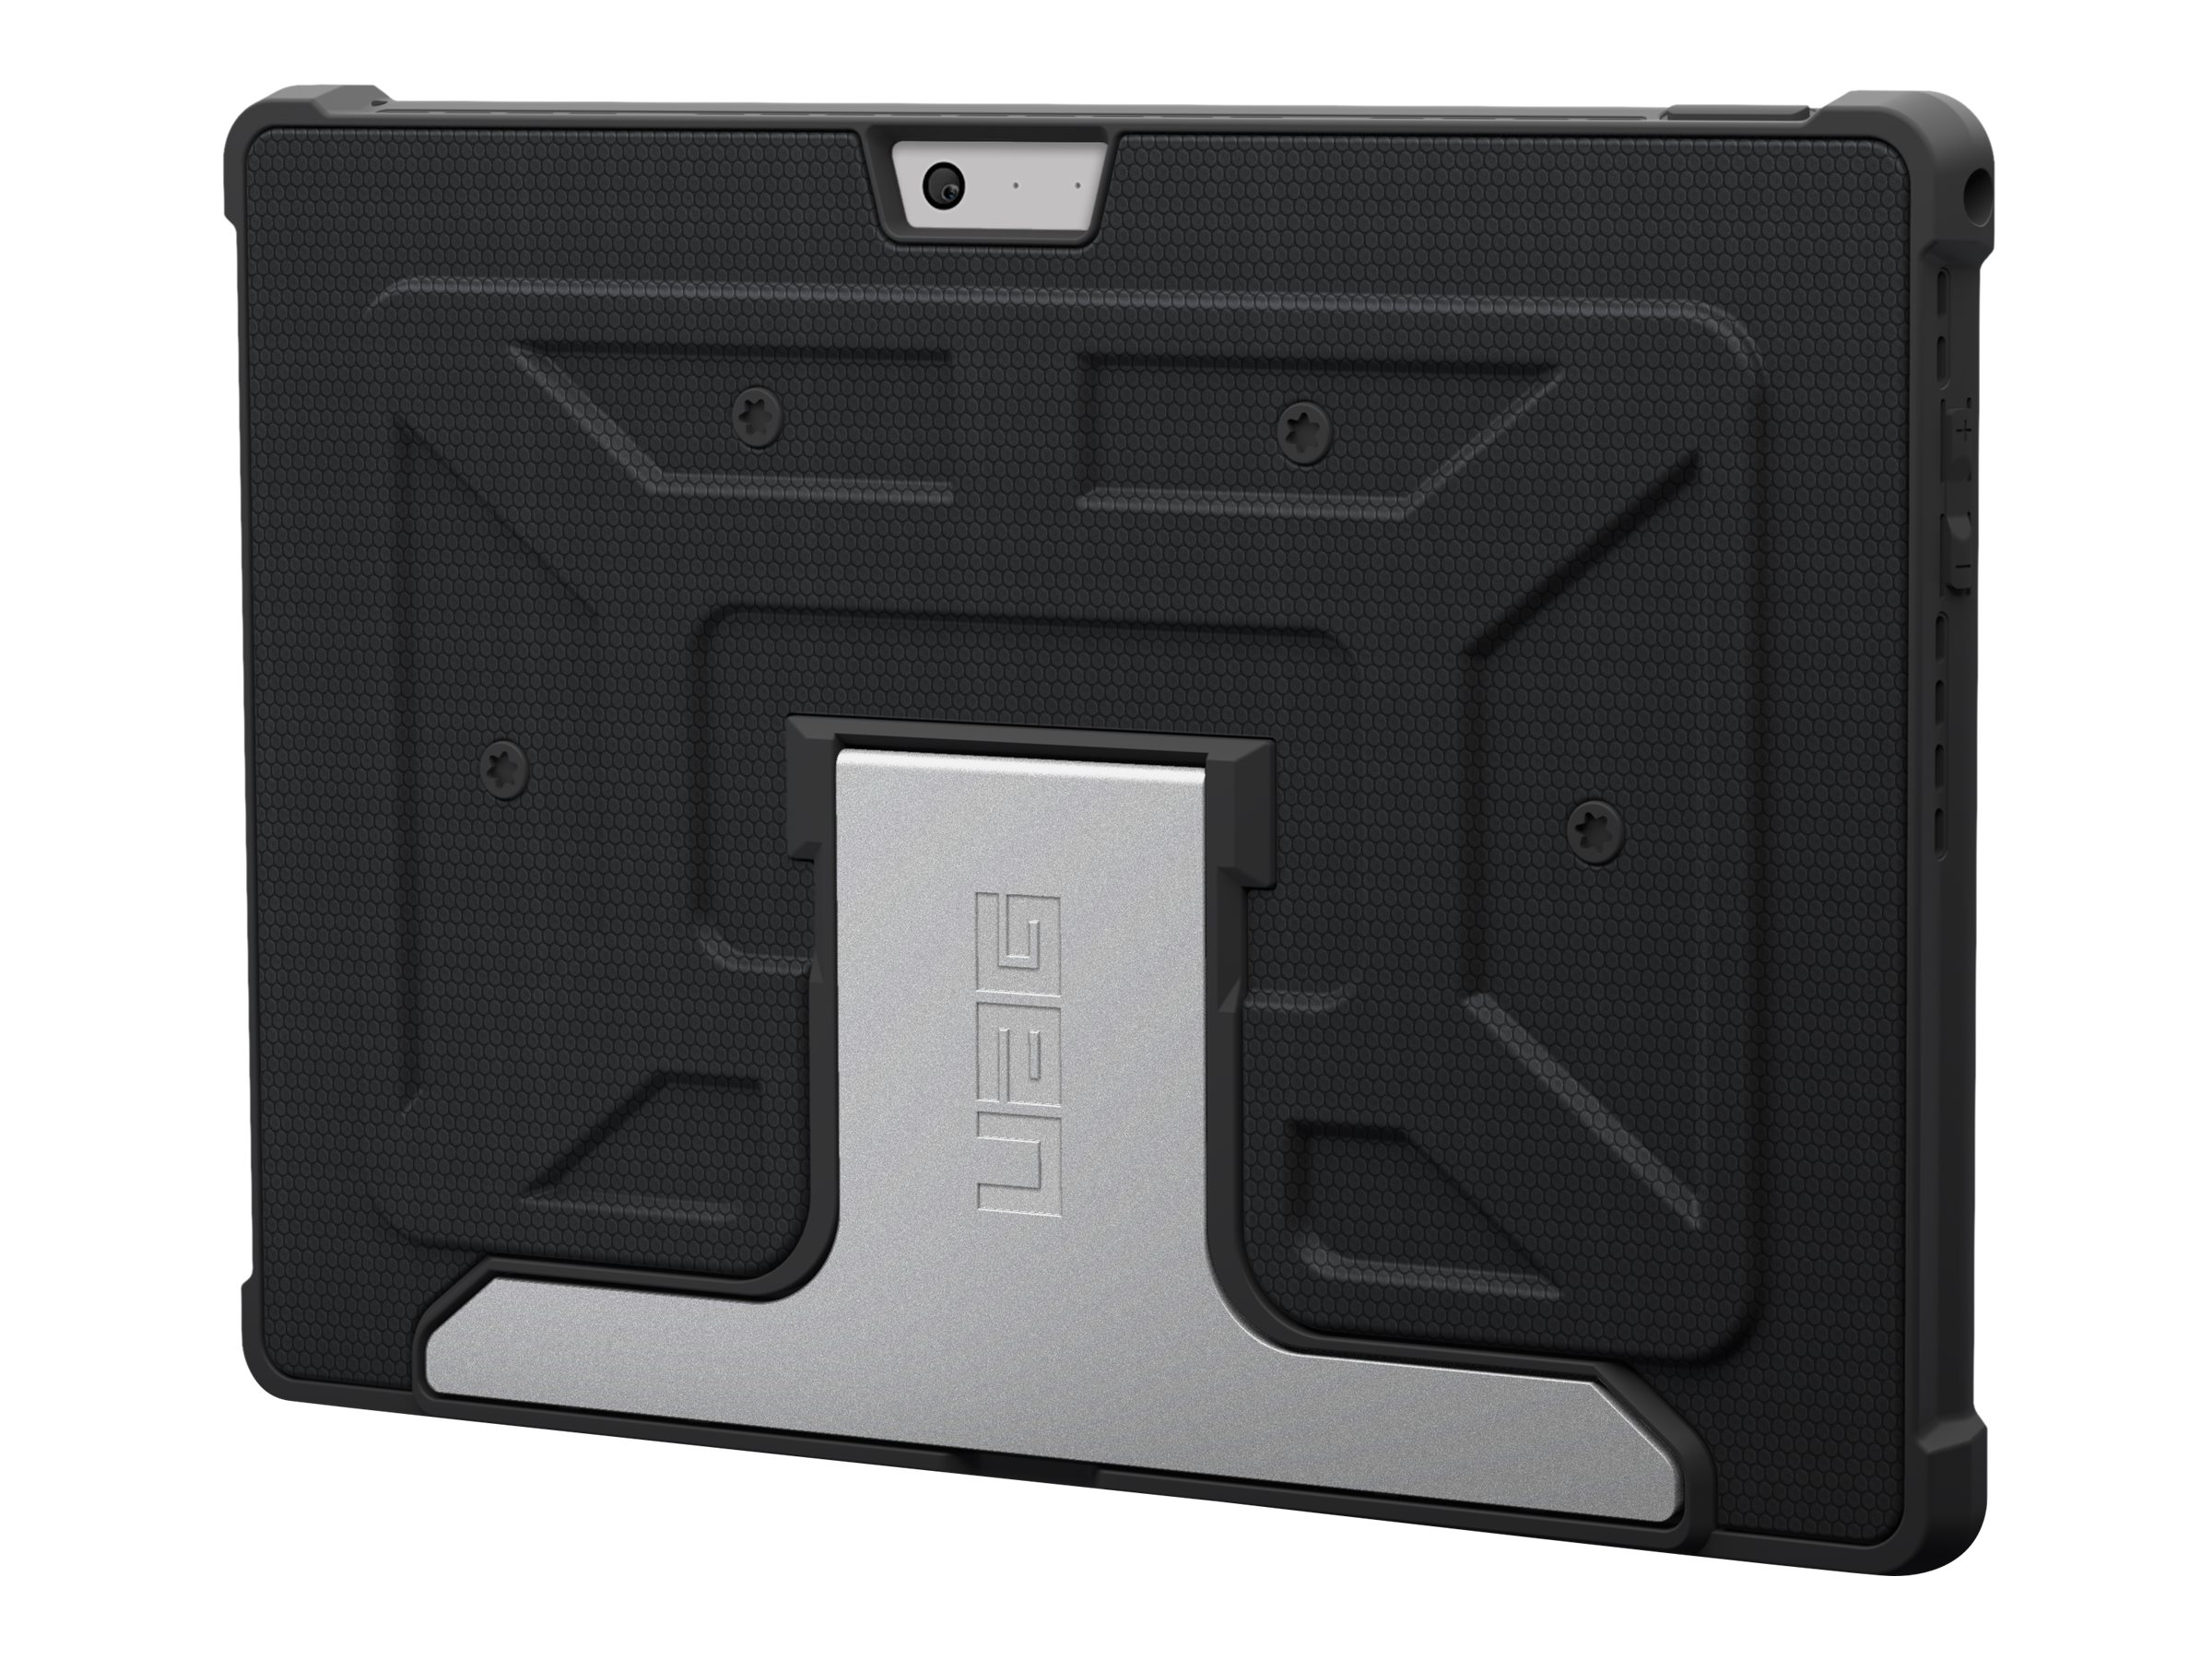 Urban Armor Surface Pro 3 Case, Black Black, UAG-SFPRO3-BLK-VP